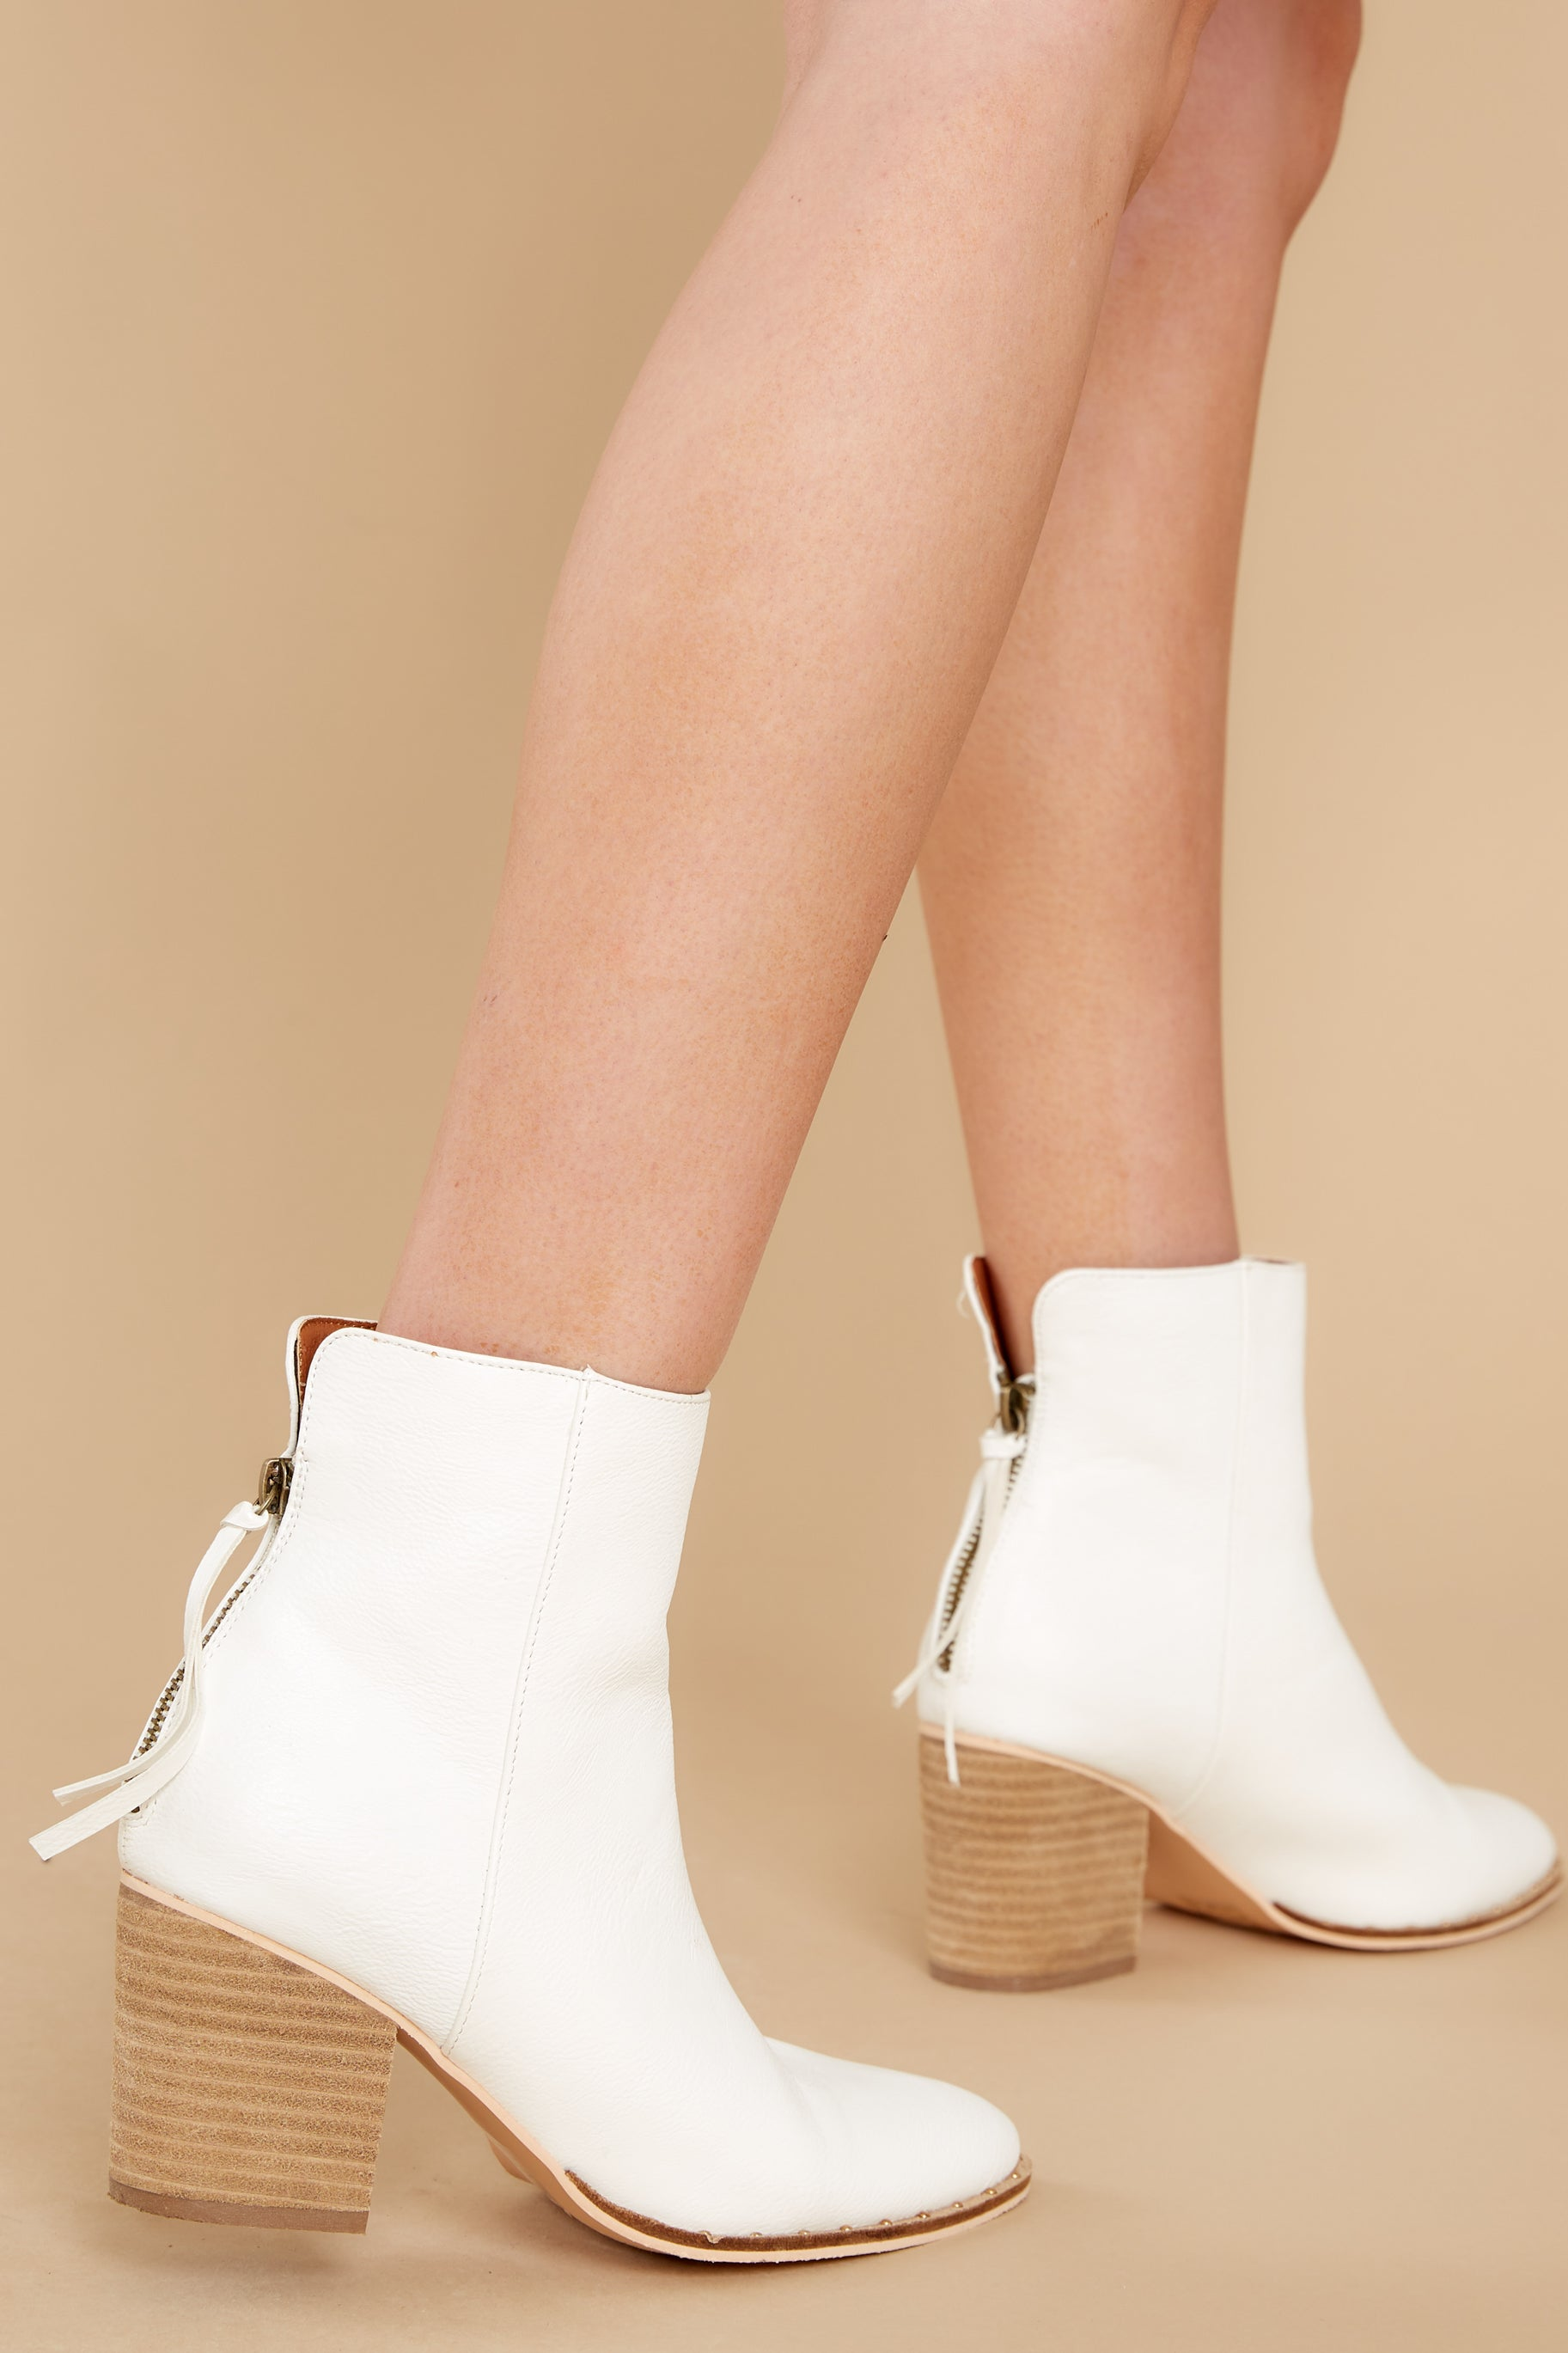 Sexy White Ankle Boots - Vegan Suede